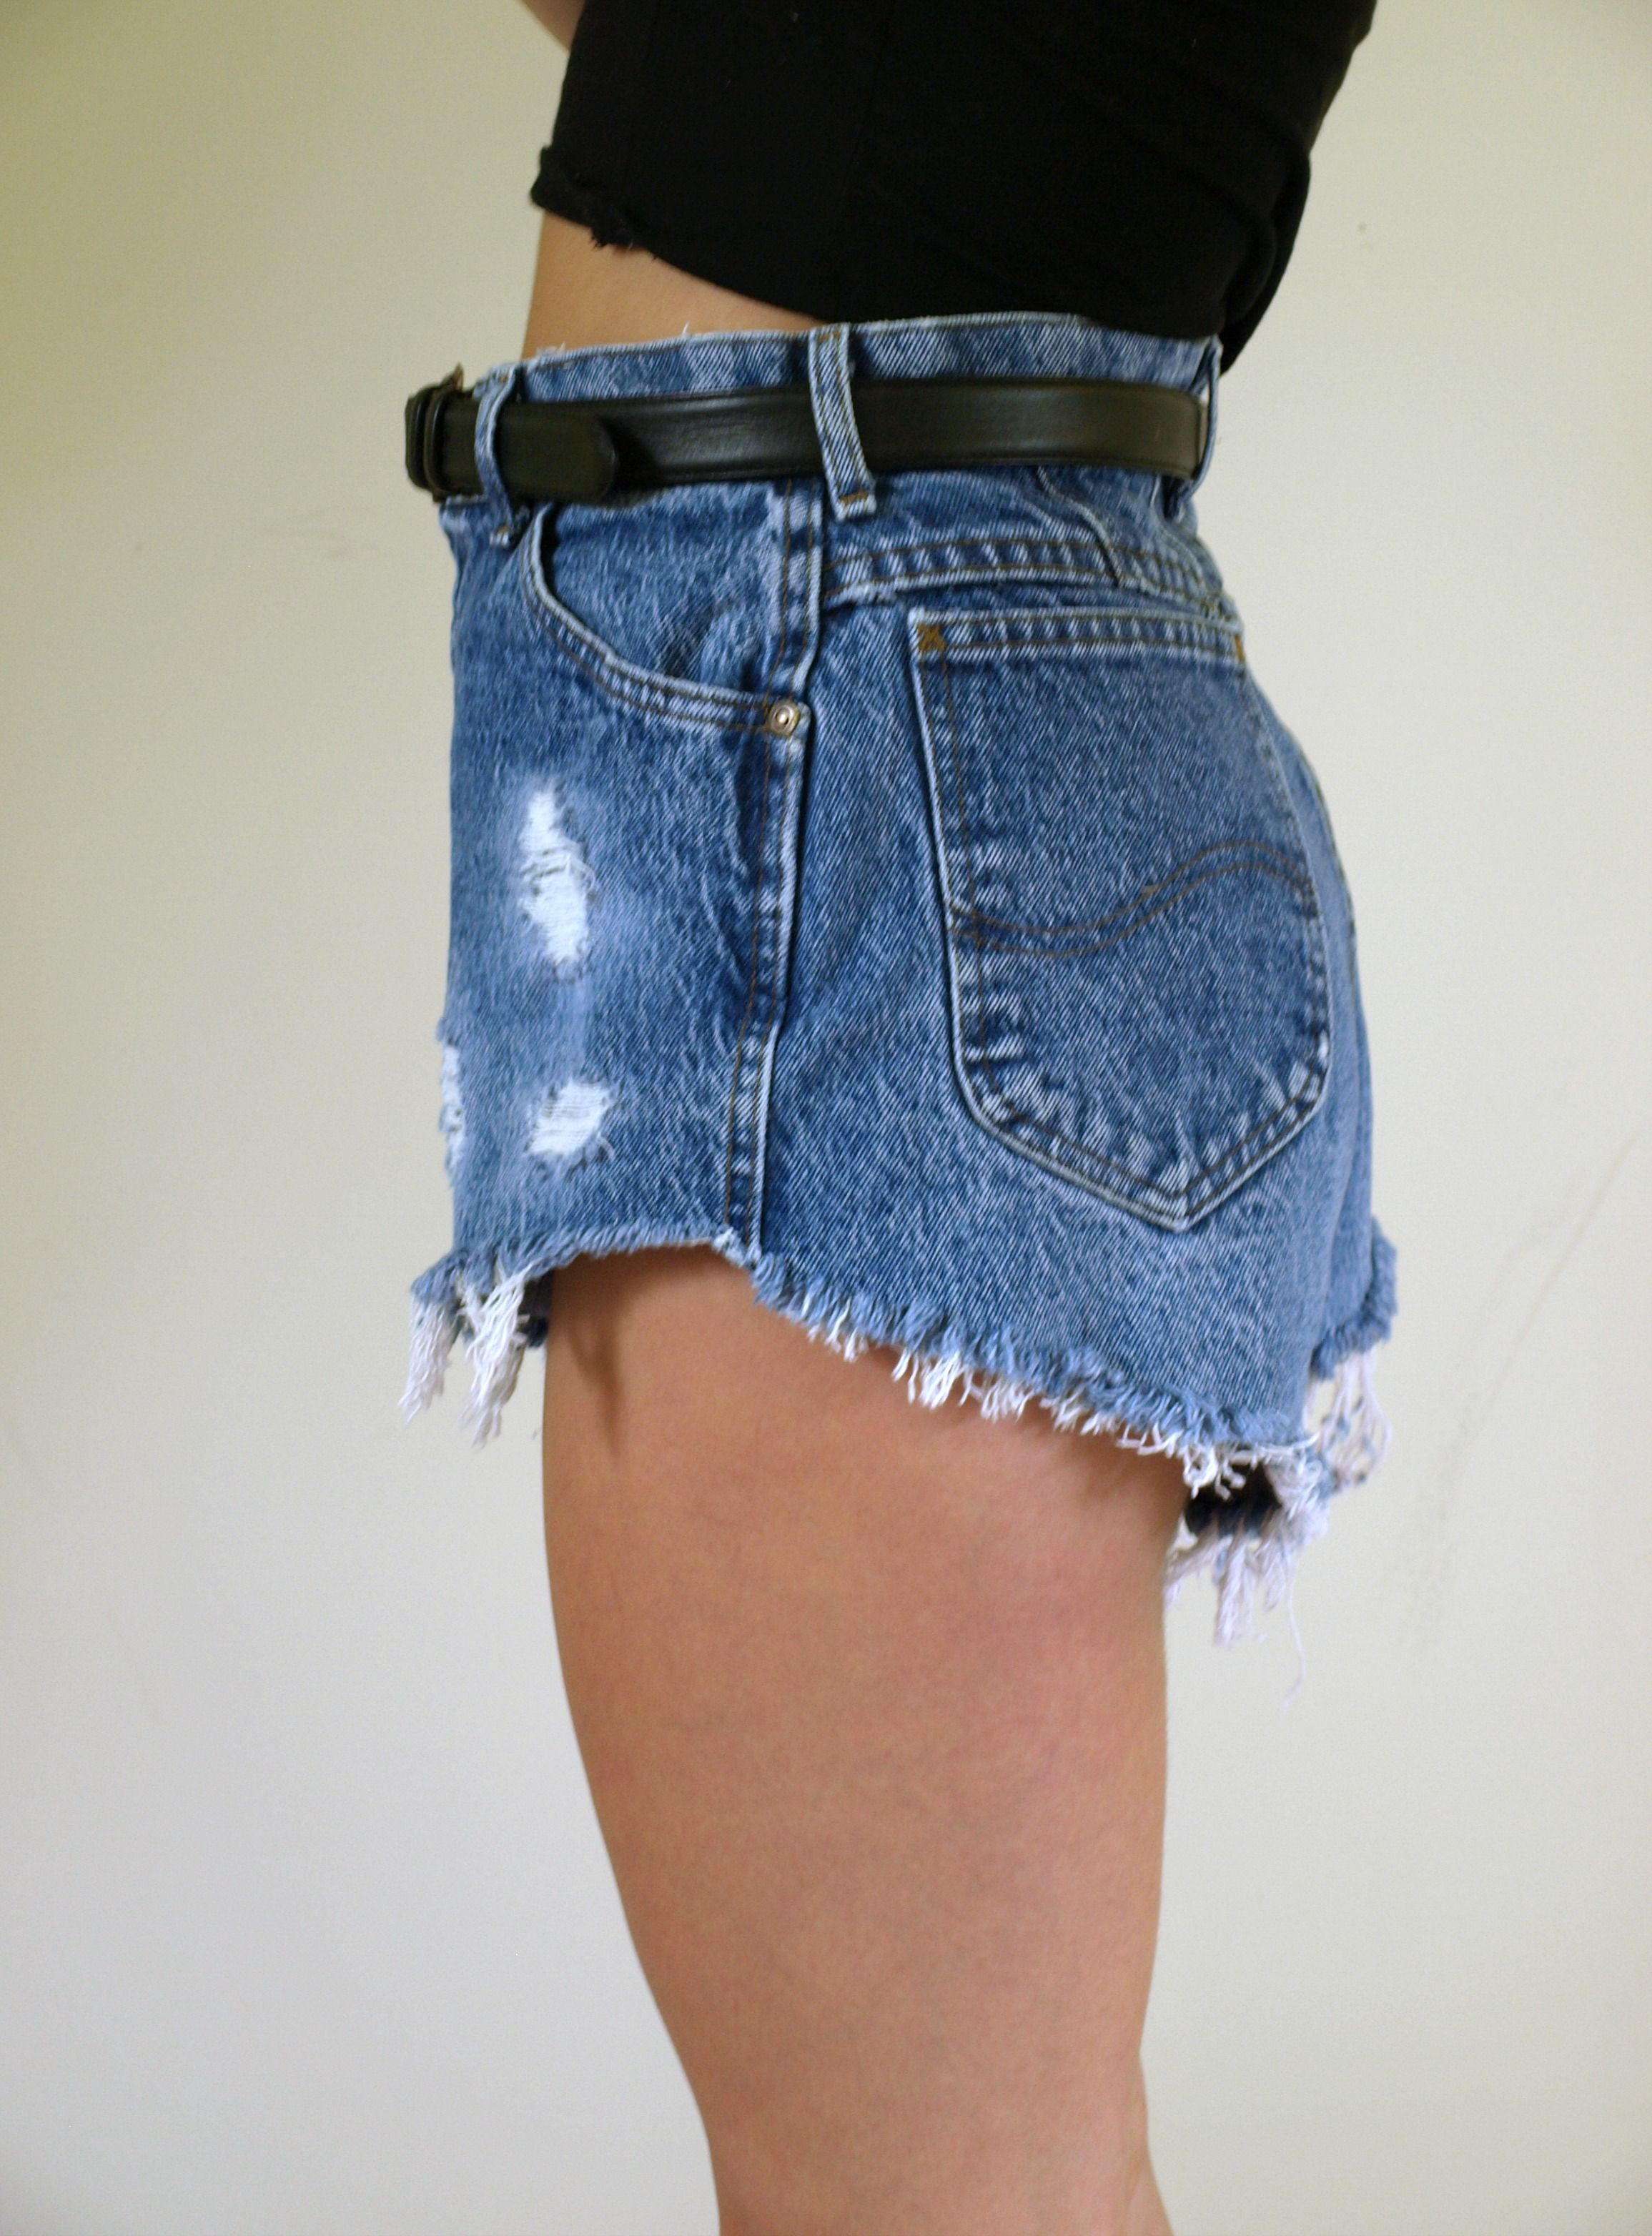 823f2f1b0 Distressed Cut Off High Waisted Jean Shorts Lee DIY | Summer outfit ...